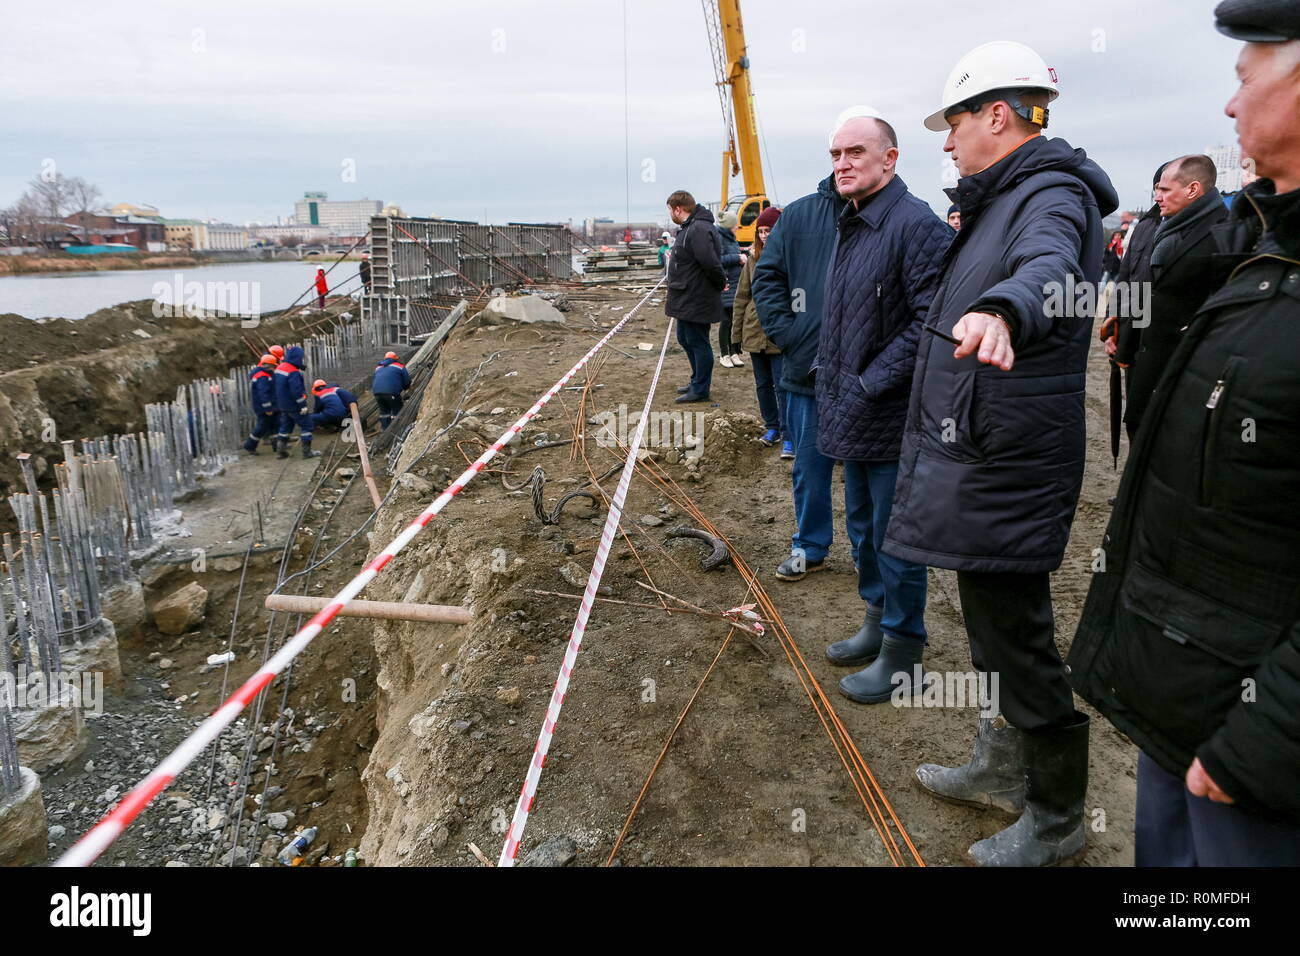 Chelyabinsk, Russia. 04th Nov, 2018. CHELYABINSK, RUSSIA - NOVEMBER 4, 2018: The Governor of Chelyabinsk Region, Boris Dubrovsky (3rd R front), at the construction site of a cultural and business centre by the Miass River; in 2020, Chelyabinsk is going to host an SCO summit and a BRICS summit. Nail Fattakhov/TASS Credit: ITAR-TASS News Agency/Alamy Live News - Stock Image